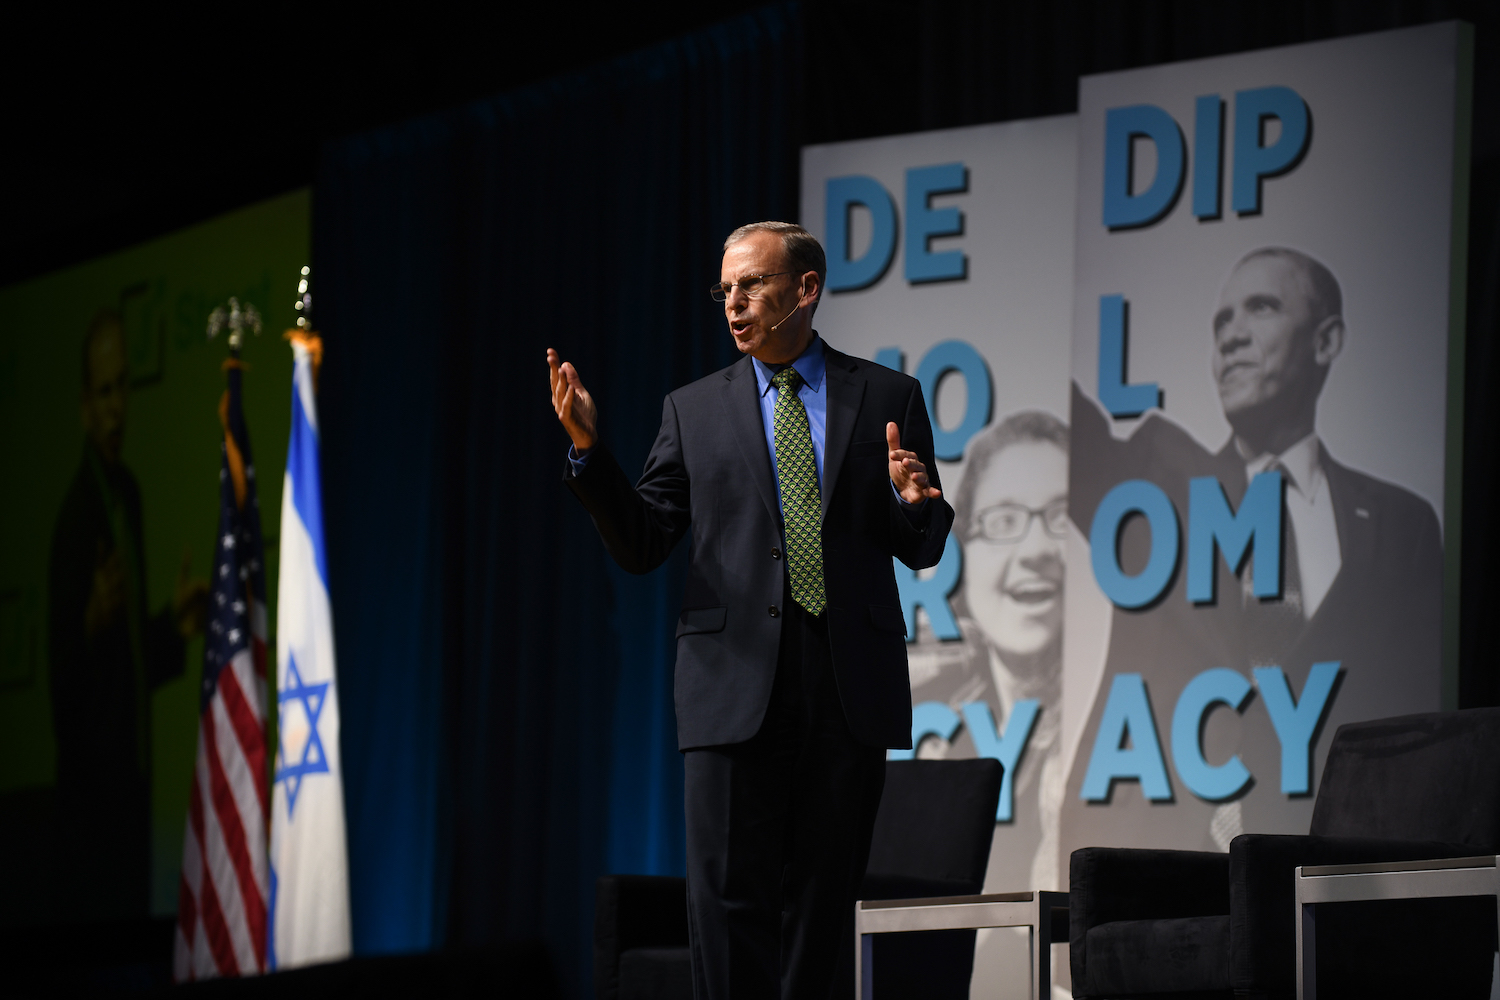 J Street President Jeremy Ben-Ami speaking at the 2019 national conference in Washington, D.C., on October 27, 2019. (Gili Getz)